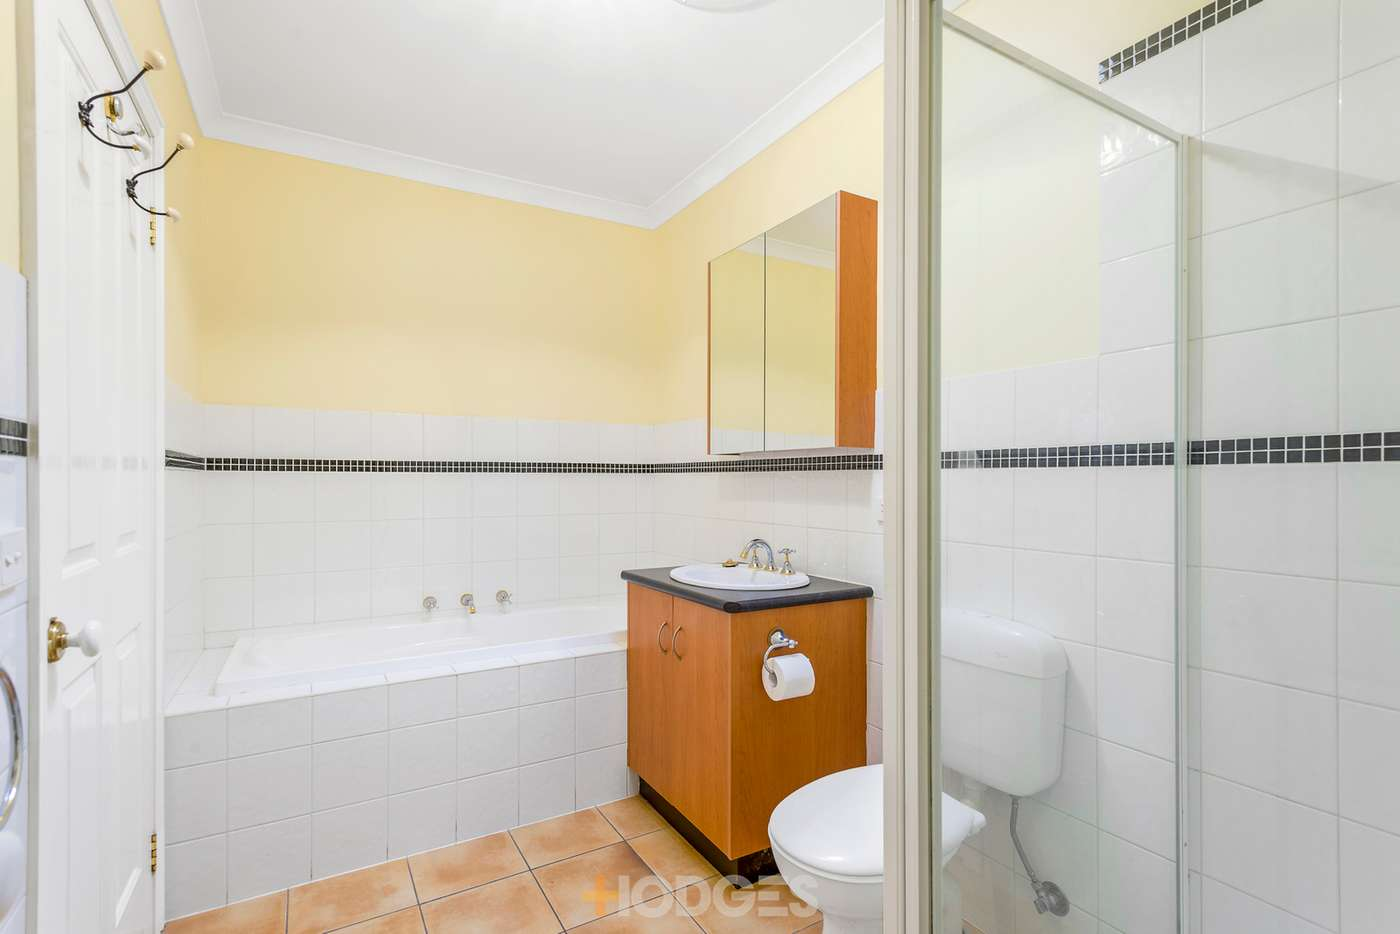 Fifth view of Homely house listing, 26A Thompson Street, Avondale Heights VIC 3034